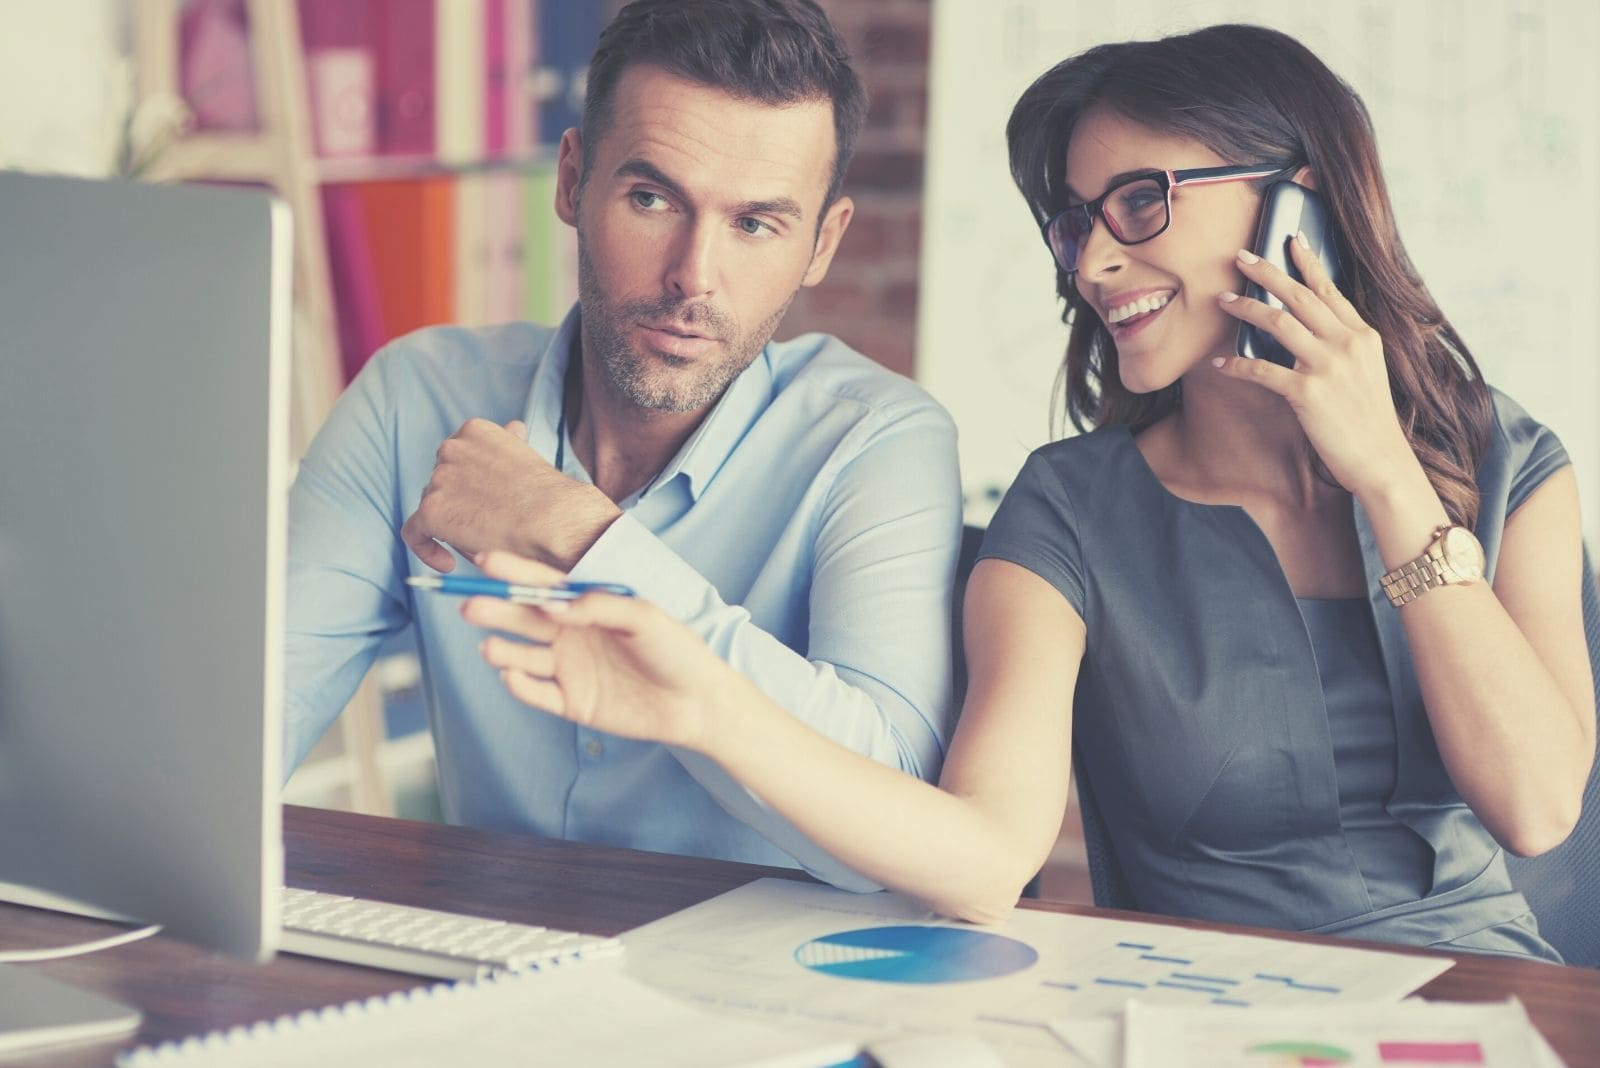 female colleague giving good advice to a male colleague regarding his work in the computer while answering phone